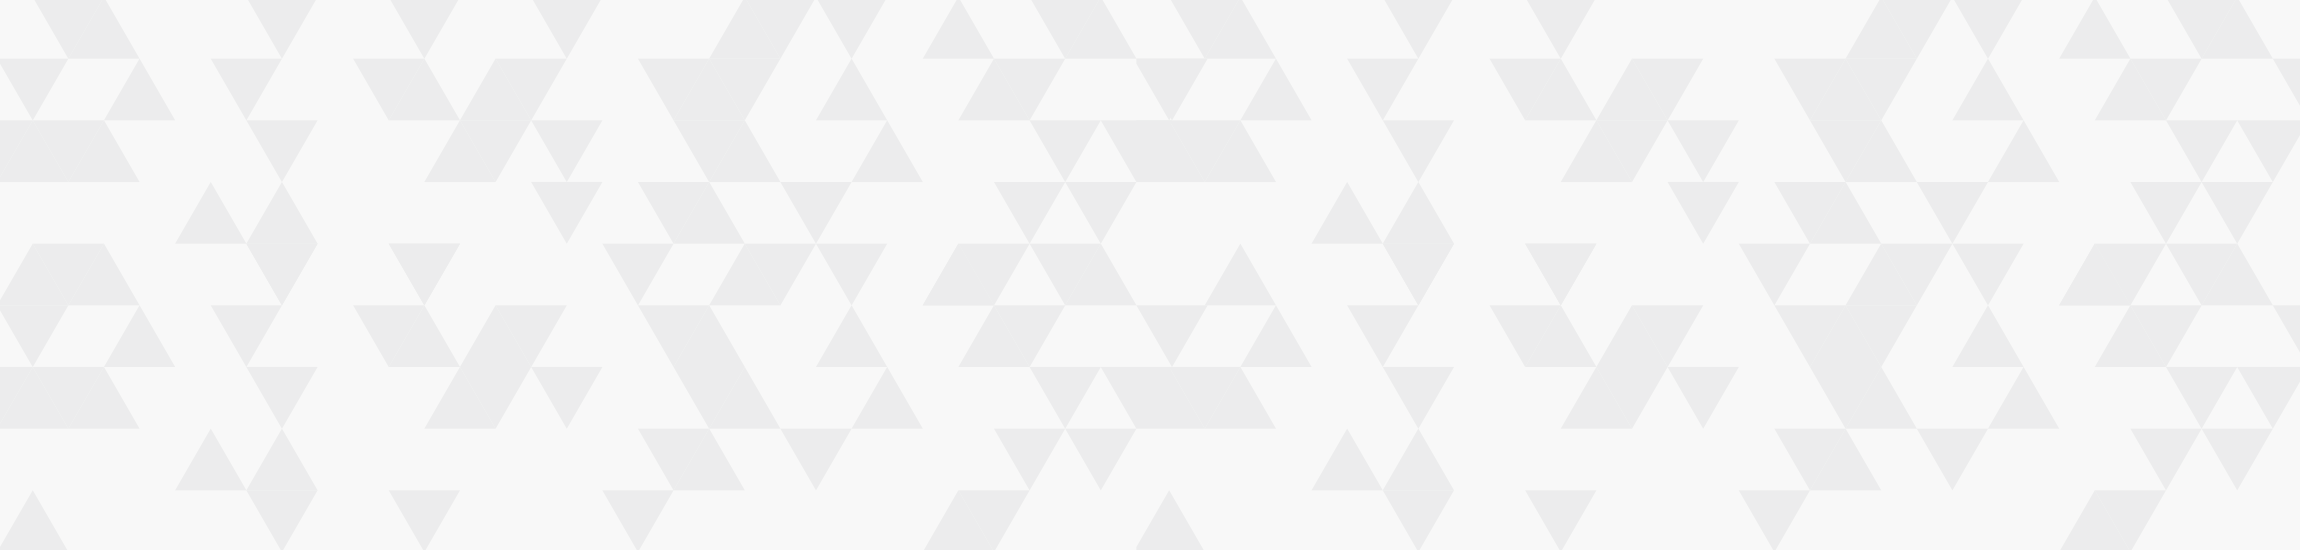 blog-list-banner-bg